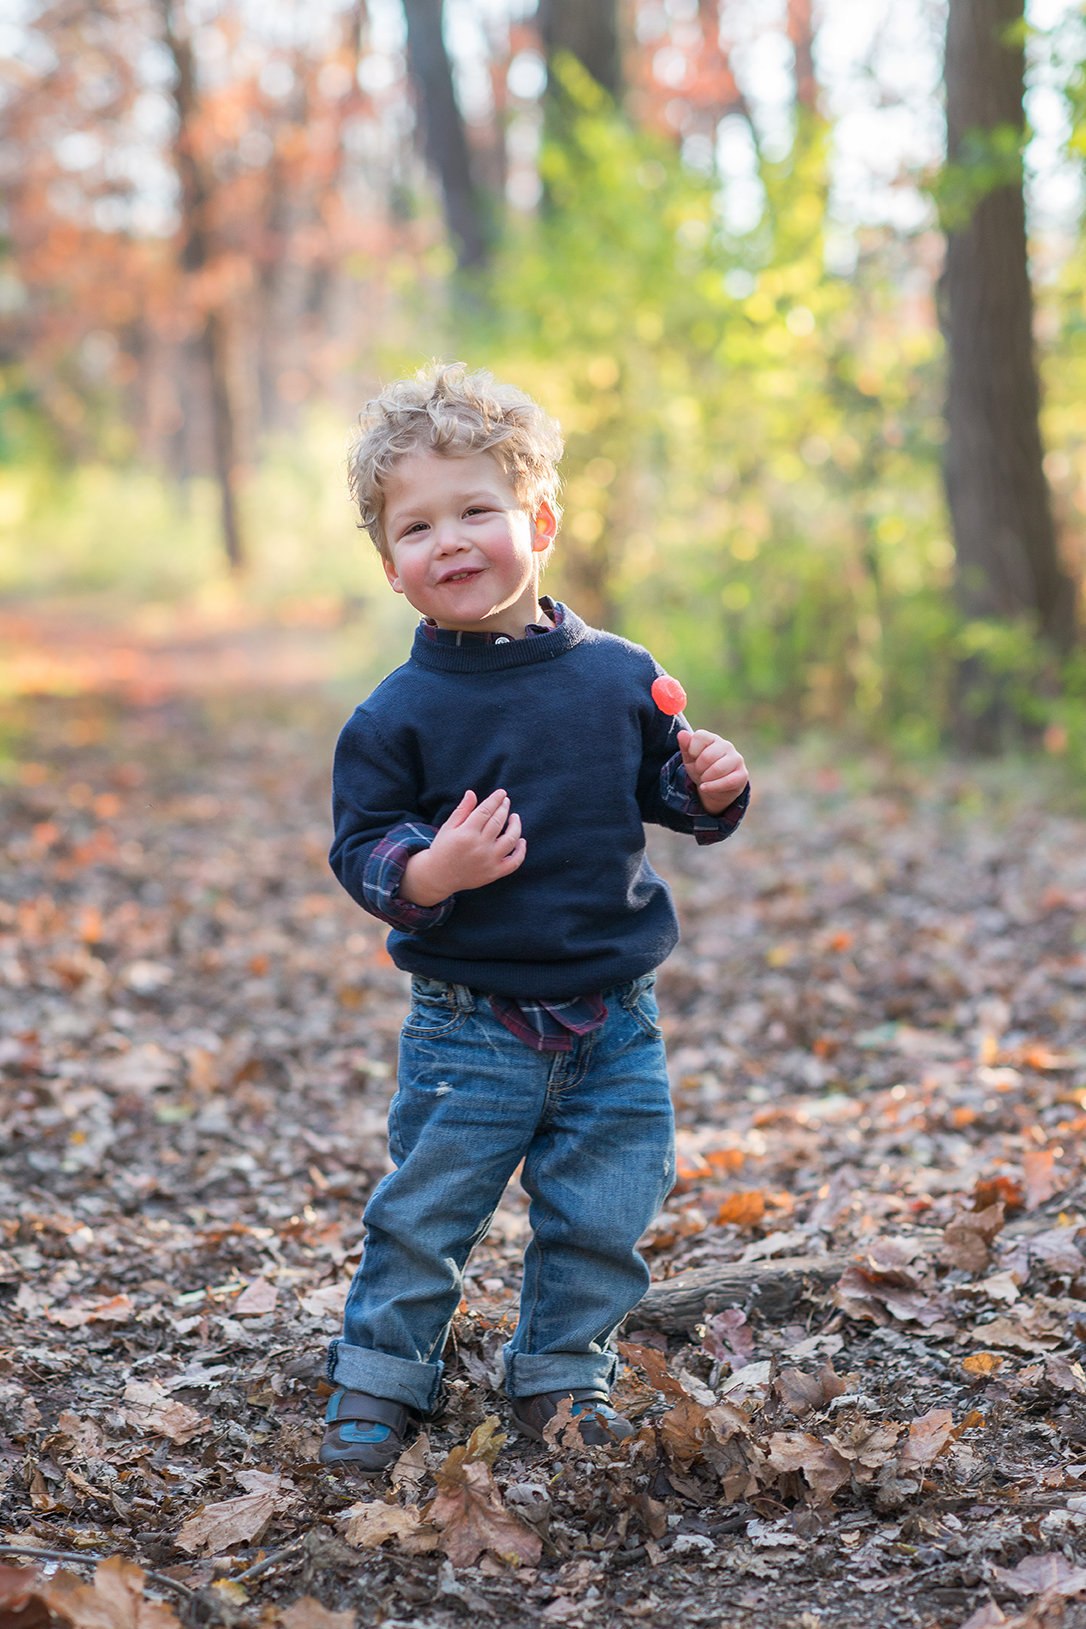 a toddler boy poses with a lollipop in linne woods